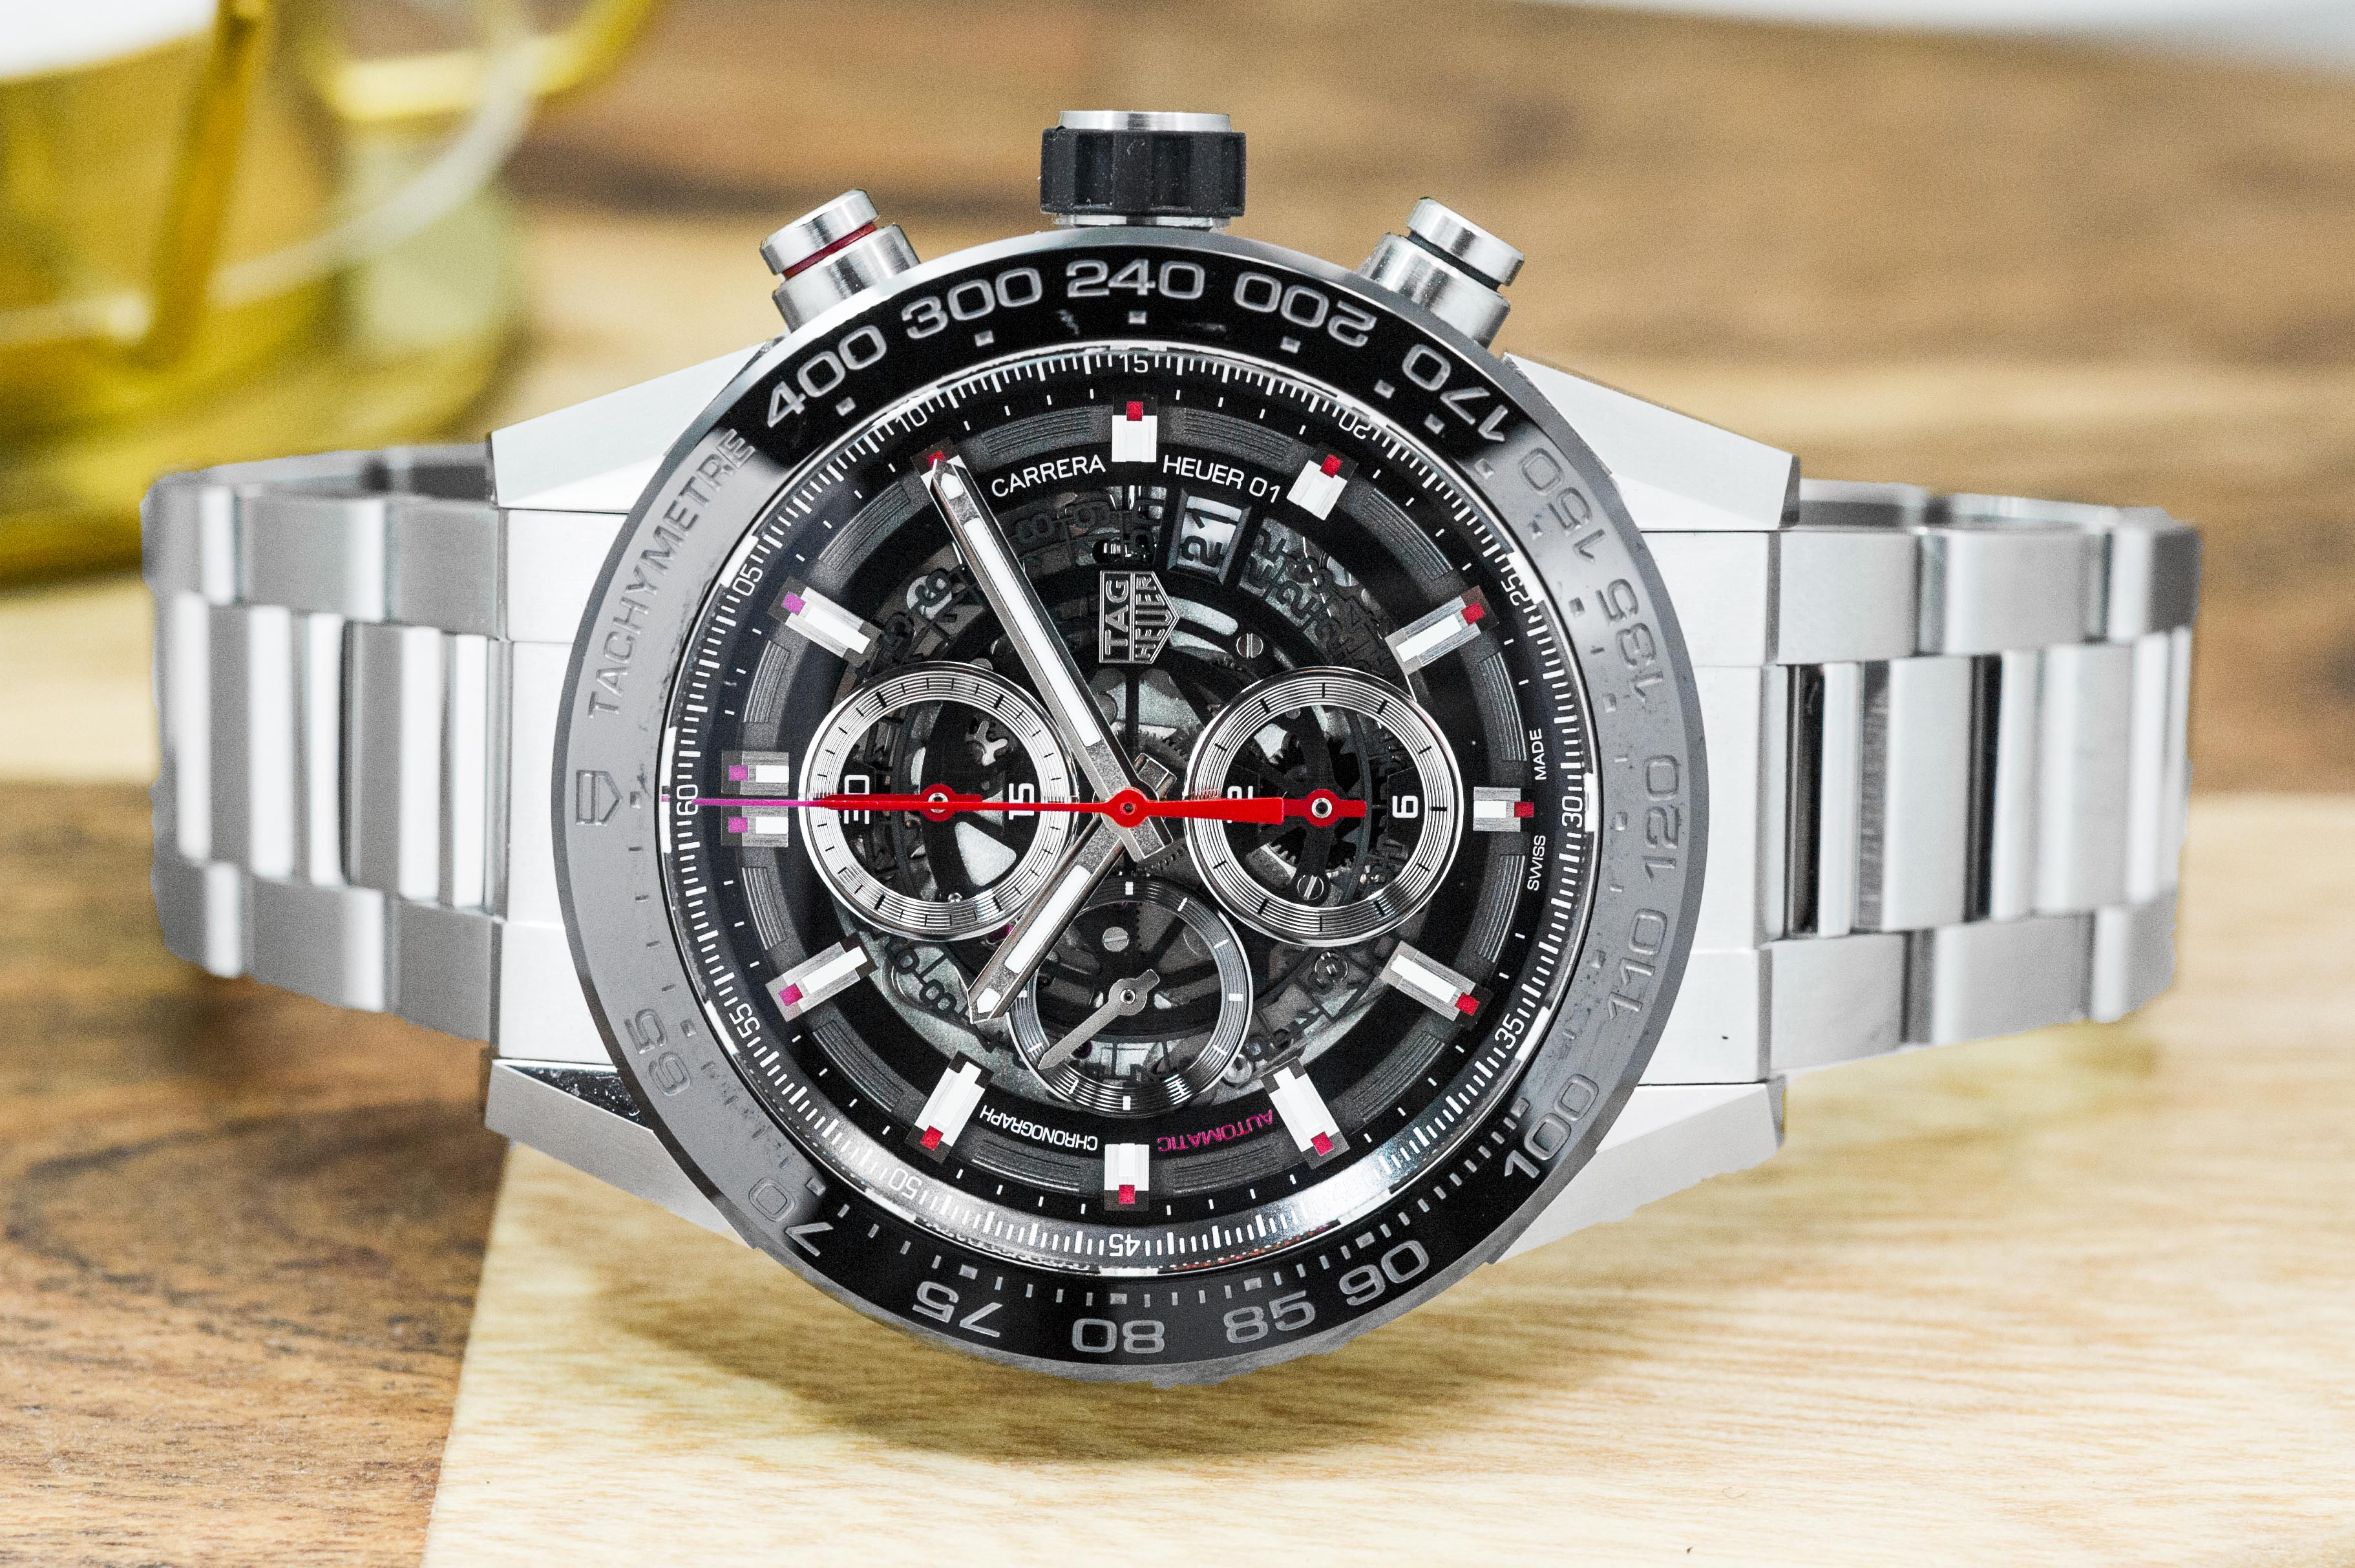 fa6890a94fc11 A Guide to Buying Your First TAG Heuer Watch - Leo Hamel Fine Jewelers Blog